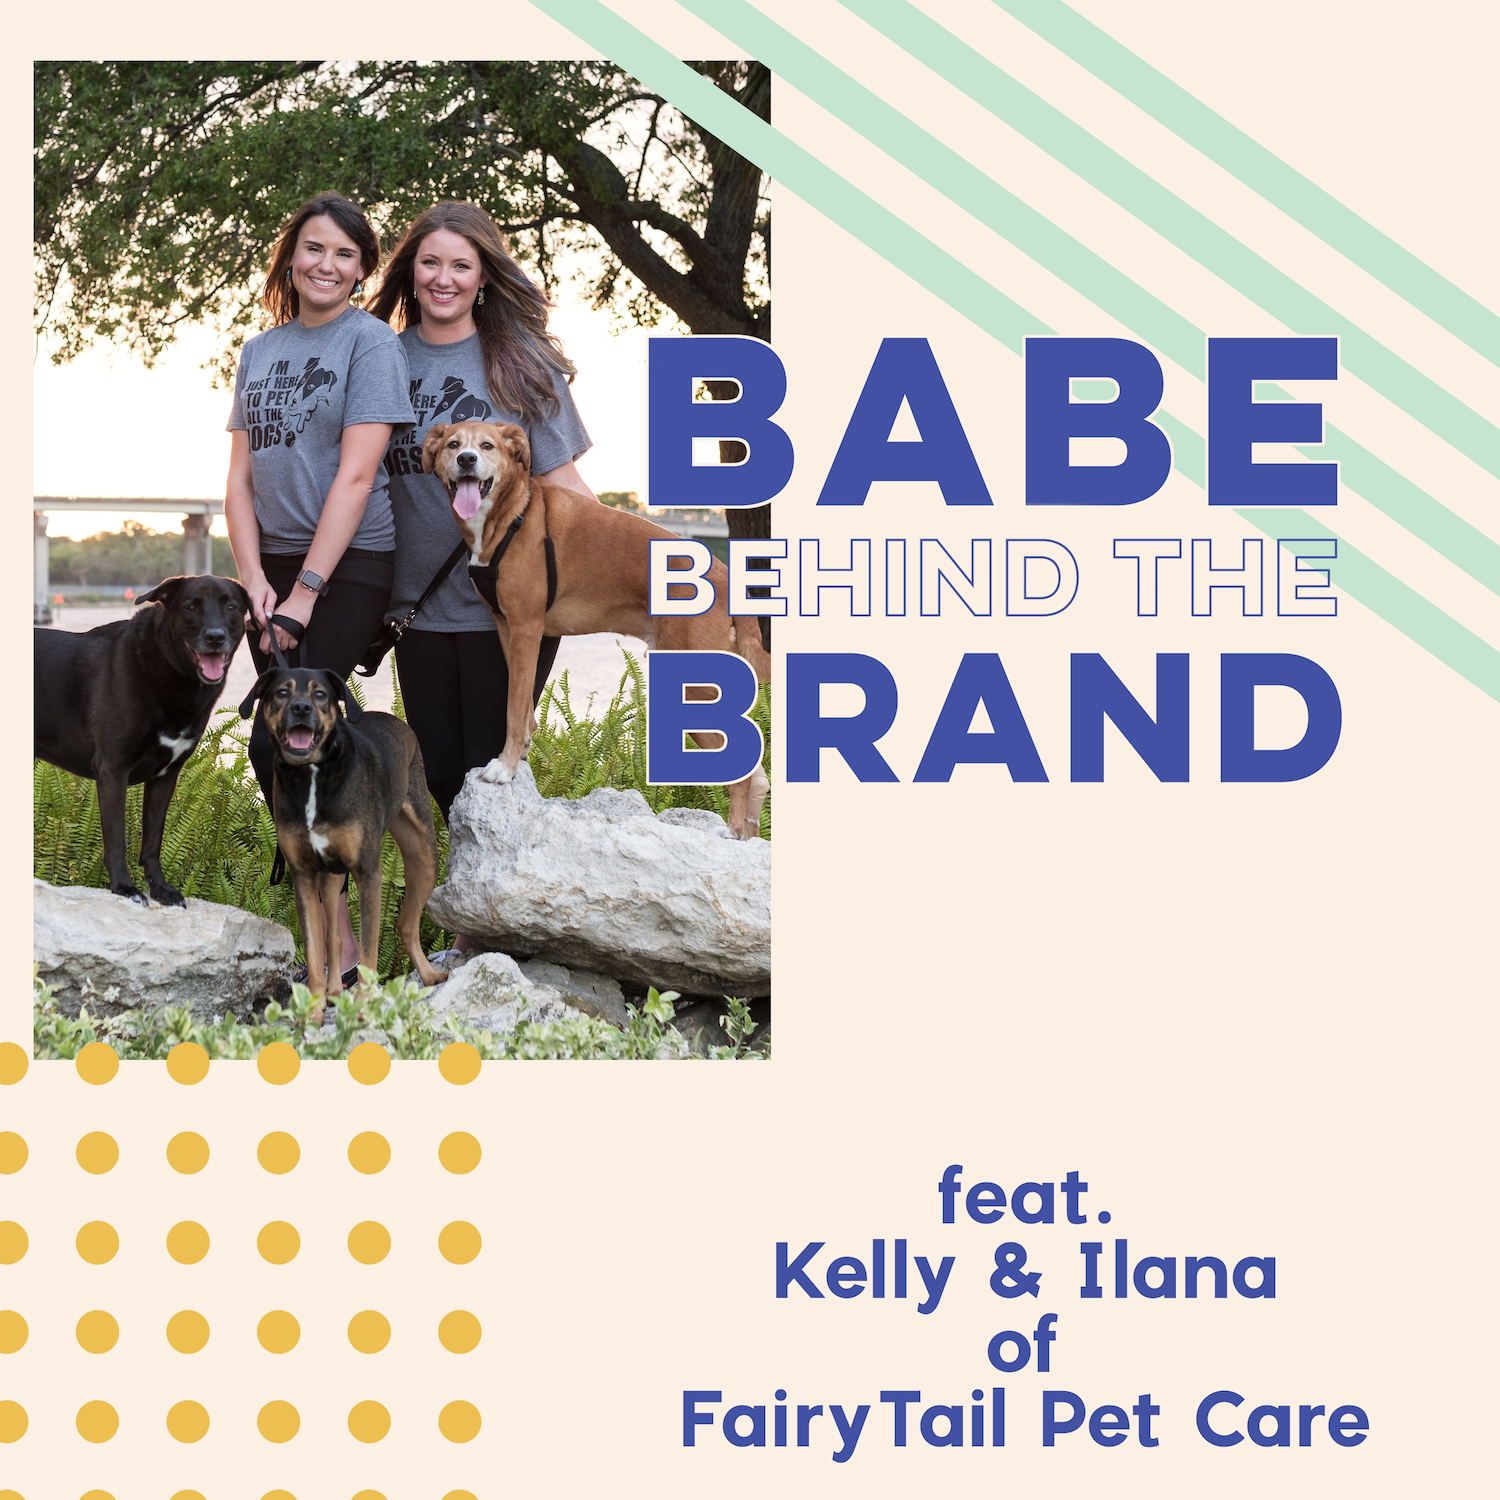 fairy-tail-pet-care-babe-behind-the-brand-podcast-babe-crafted.png